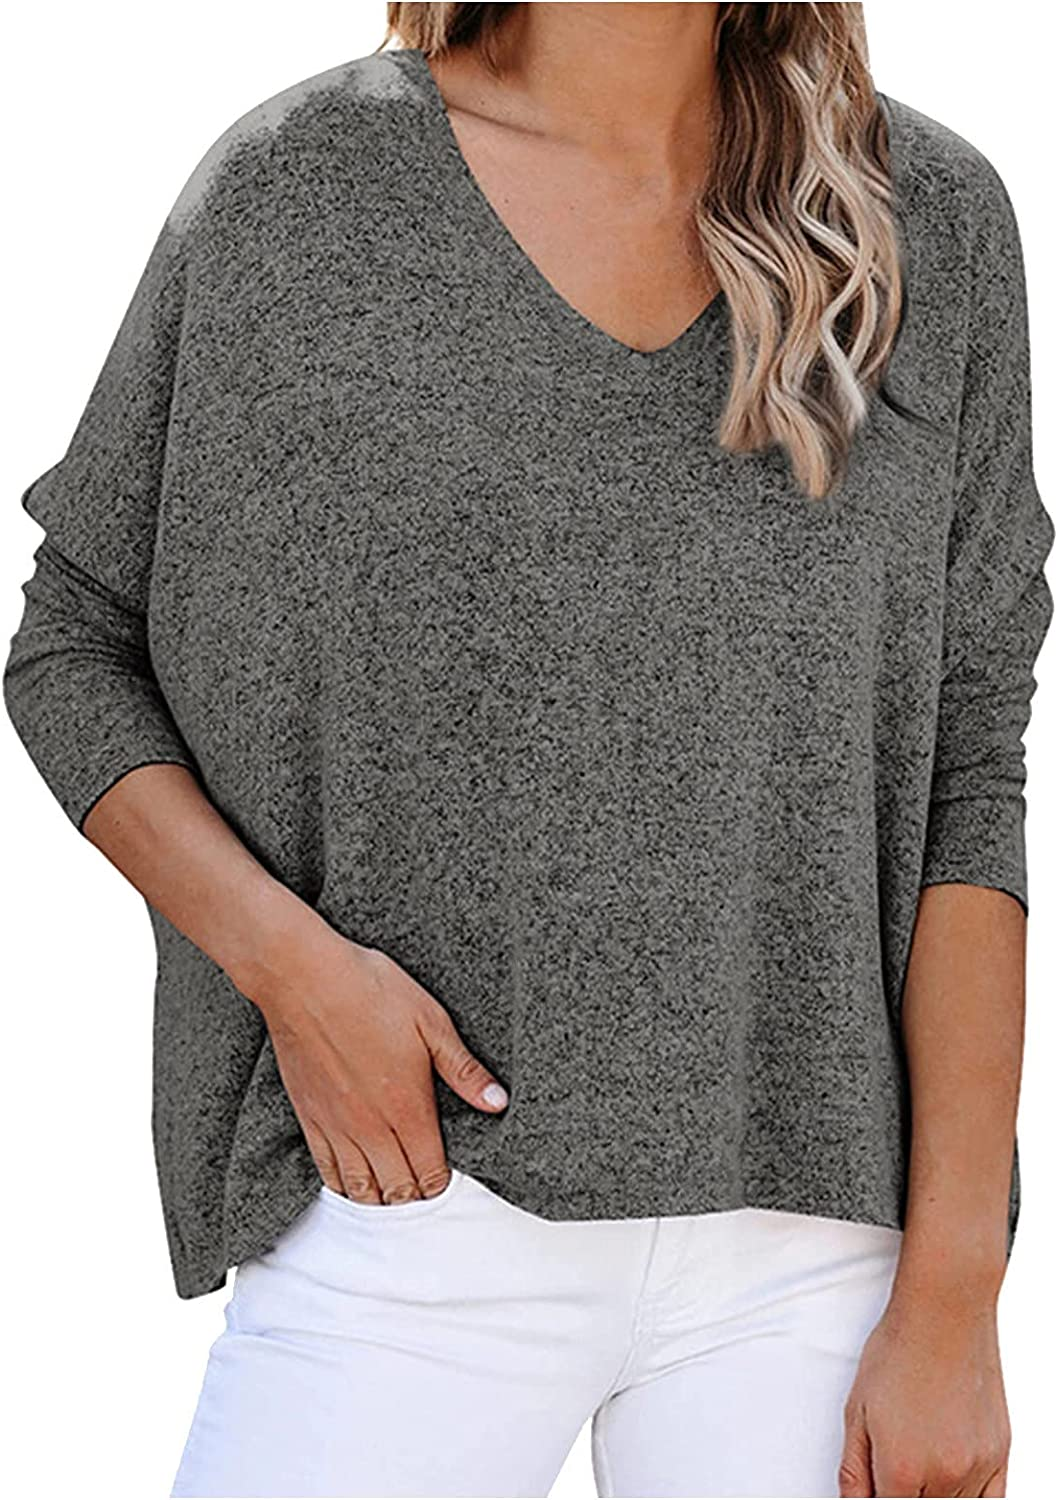 Mail order Women's V Neck Solid New Shipping Free Shipping Color T-Shirt B Batwing Loose Sleeve Casual